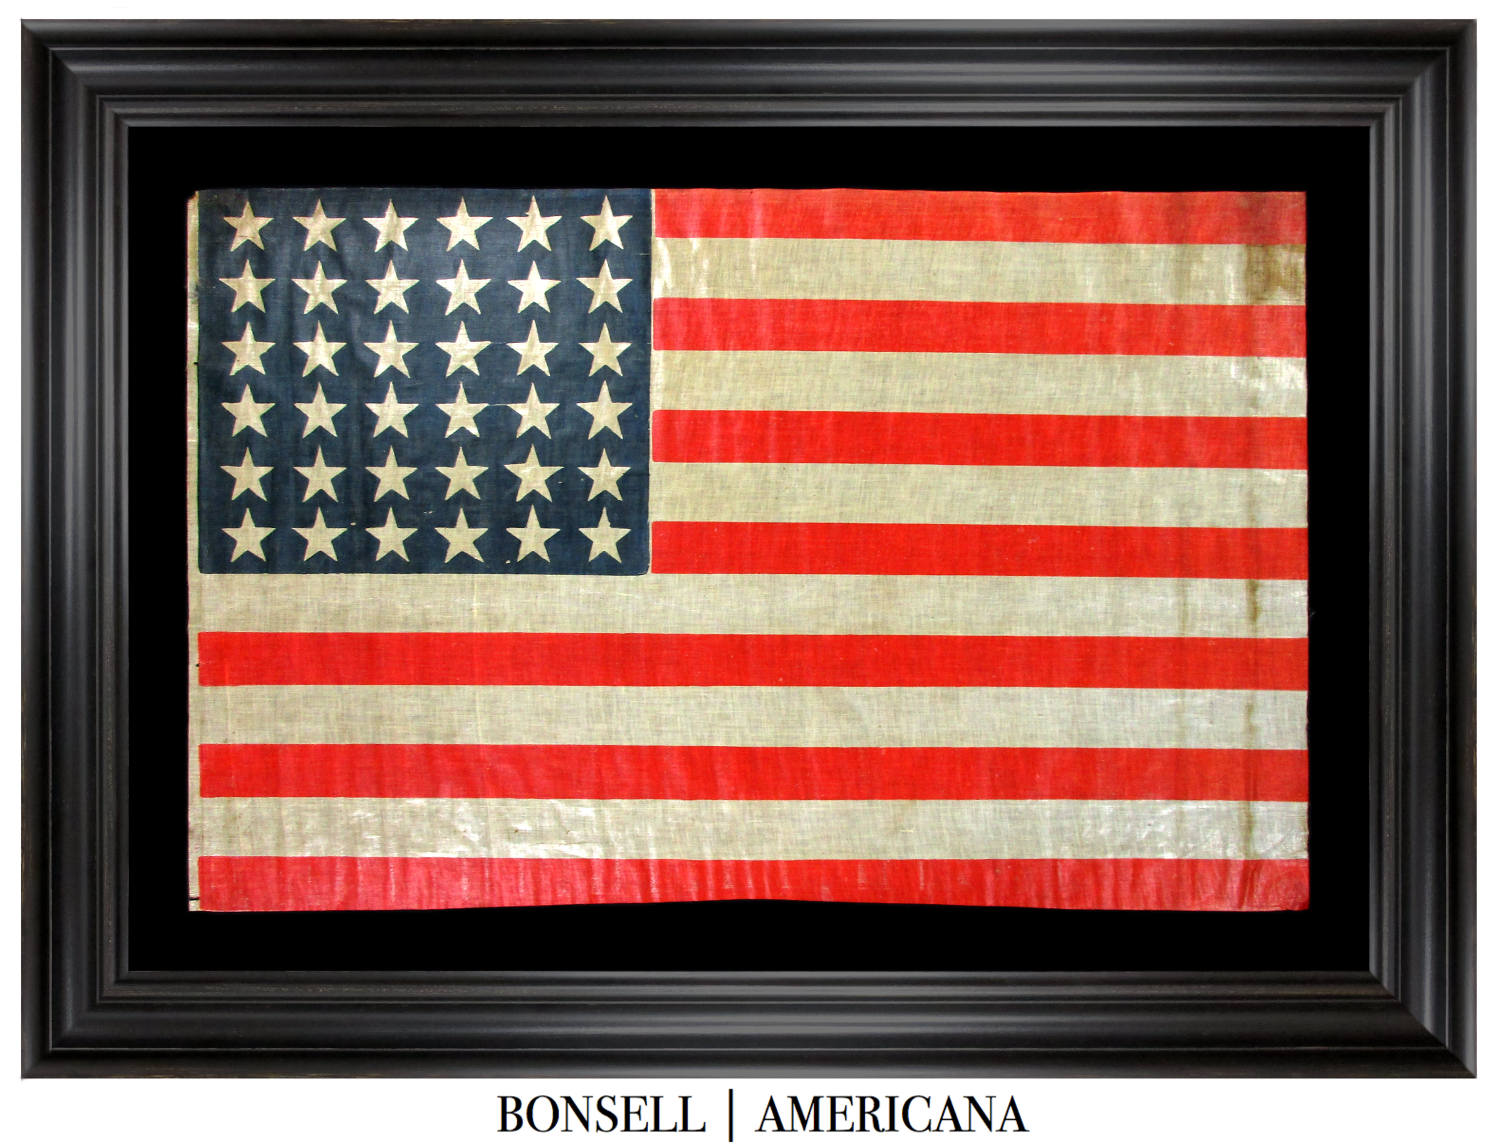 Antique Flag with a Rectilinear Star Pattern